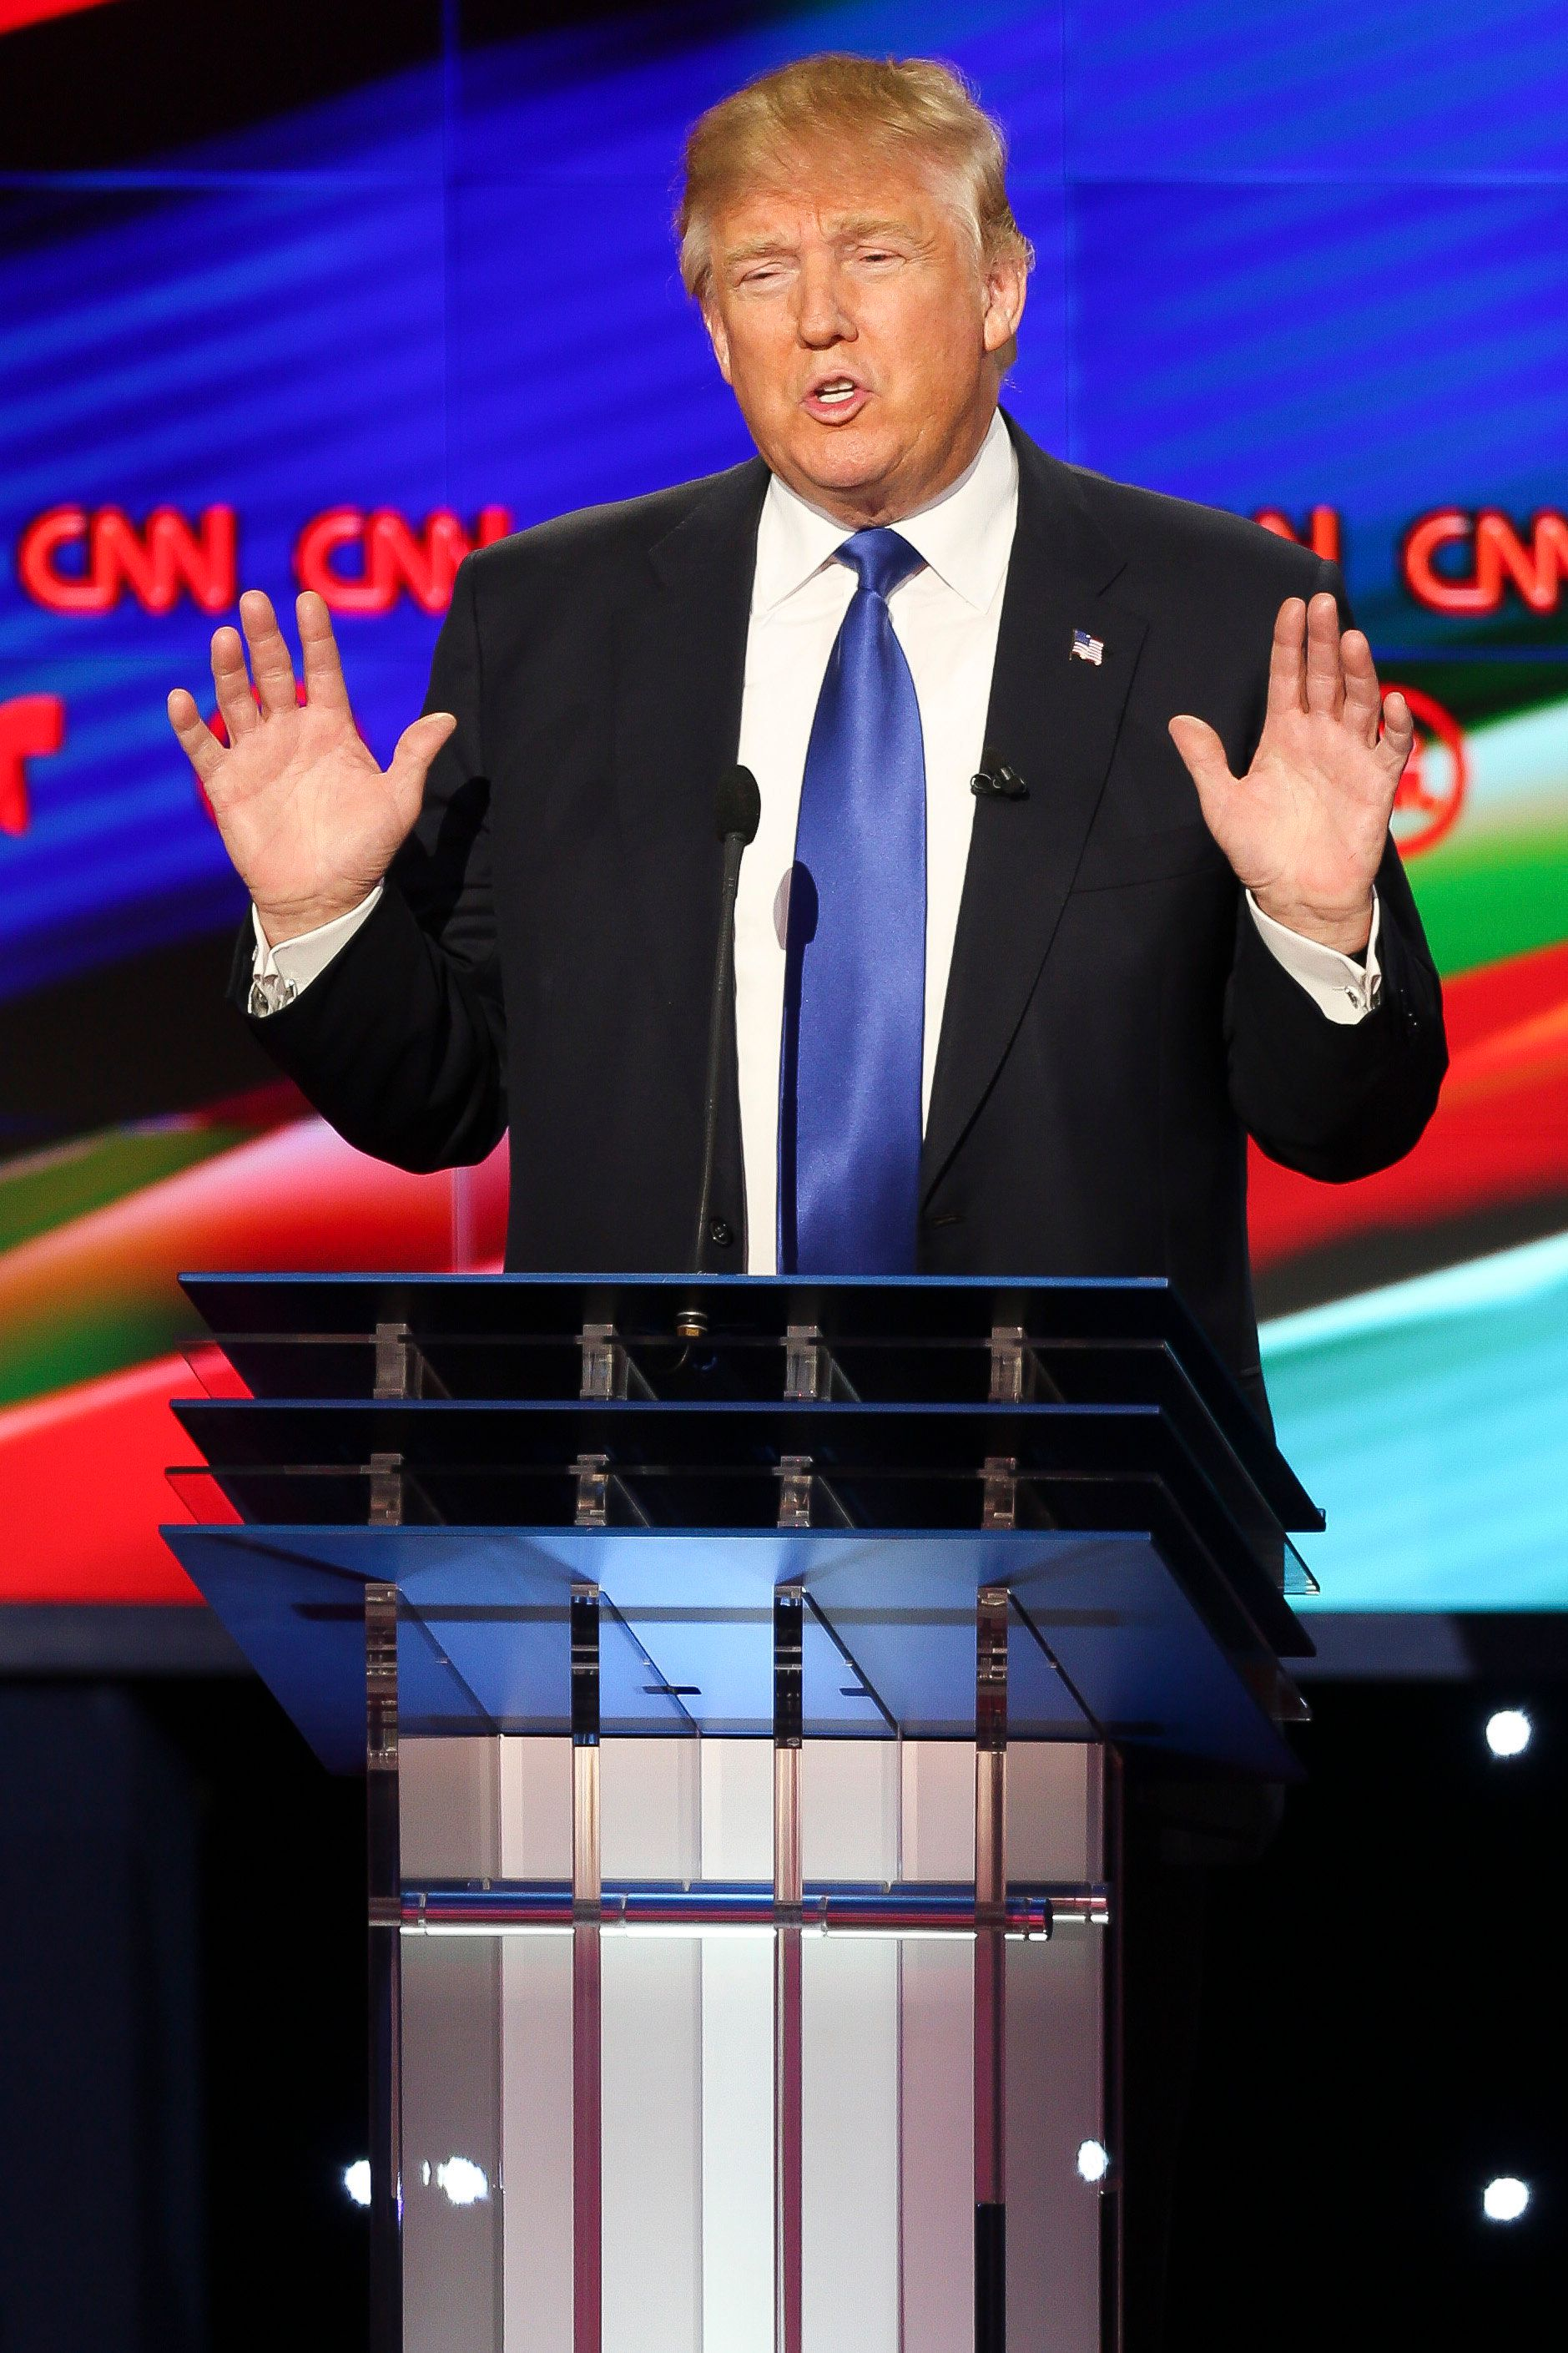 HOUSTON, TX - FEBRUARY 25:  Donald Trump speaks during the Republican presidential debate at the Moores School of Music at the University of Houston on February 25, 2016 in Houston, Texas. The debate is the last before the March 1 Super Tuesday primaries.  (Photo by Michael Ciaglo-Pool/Getty Images )